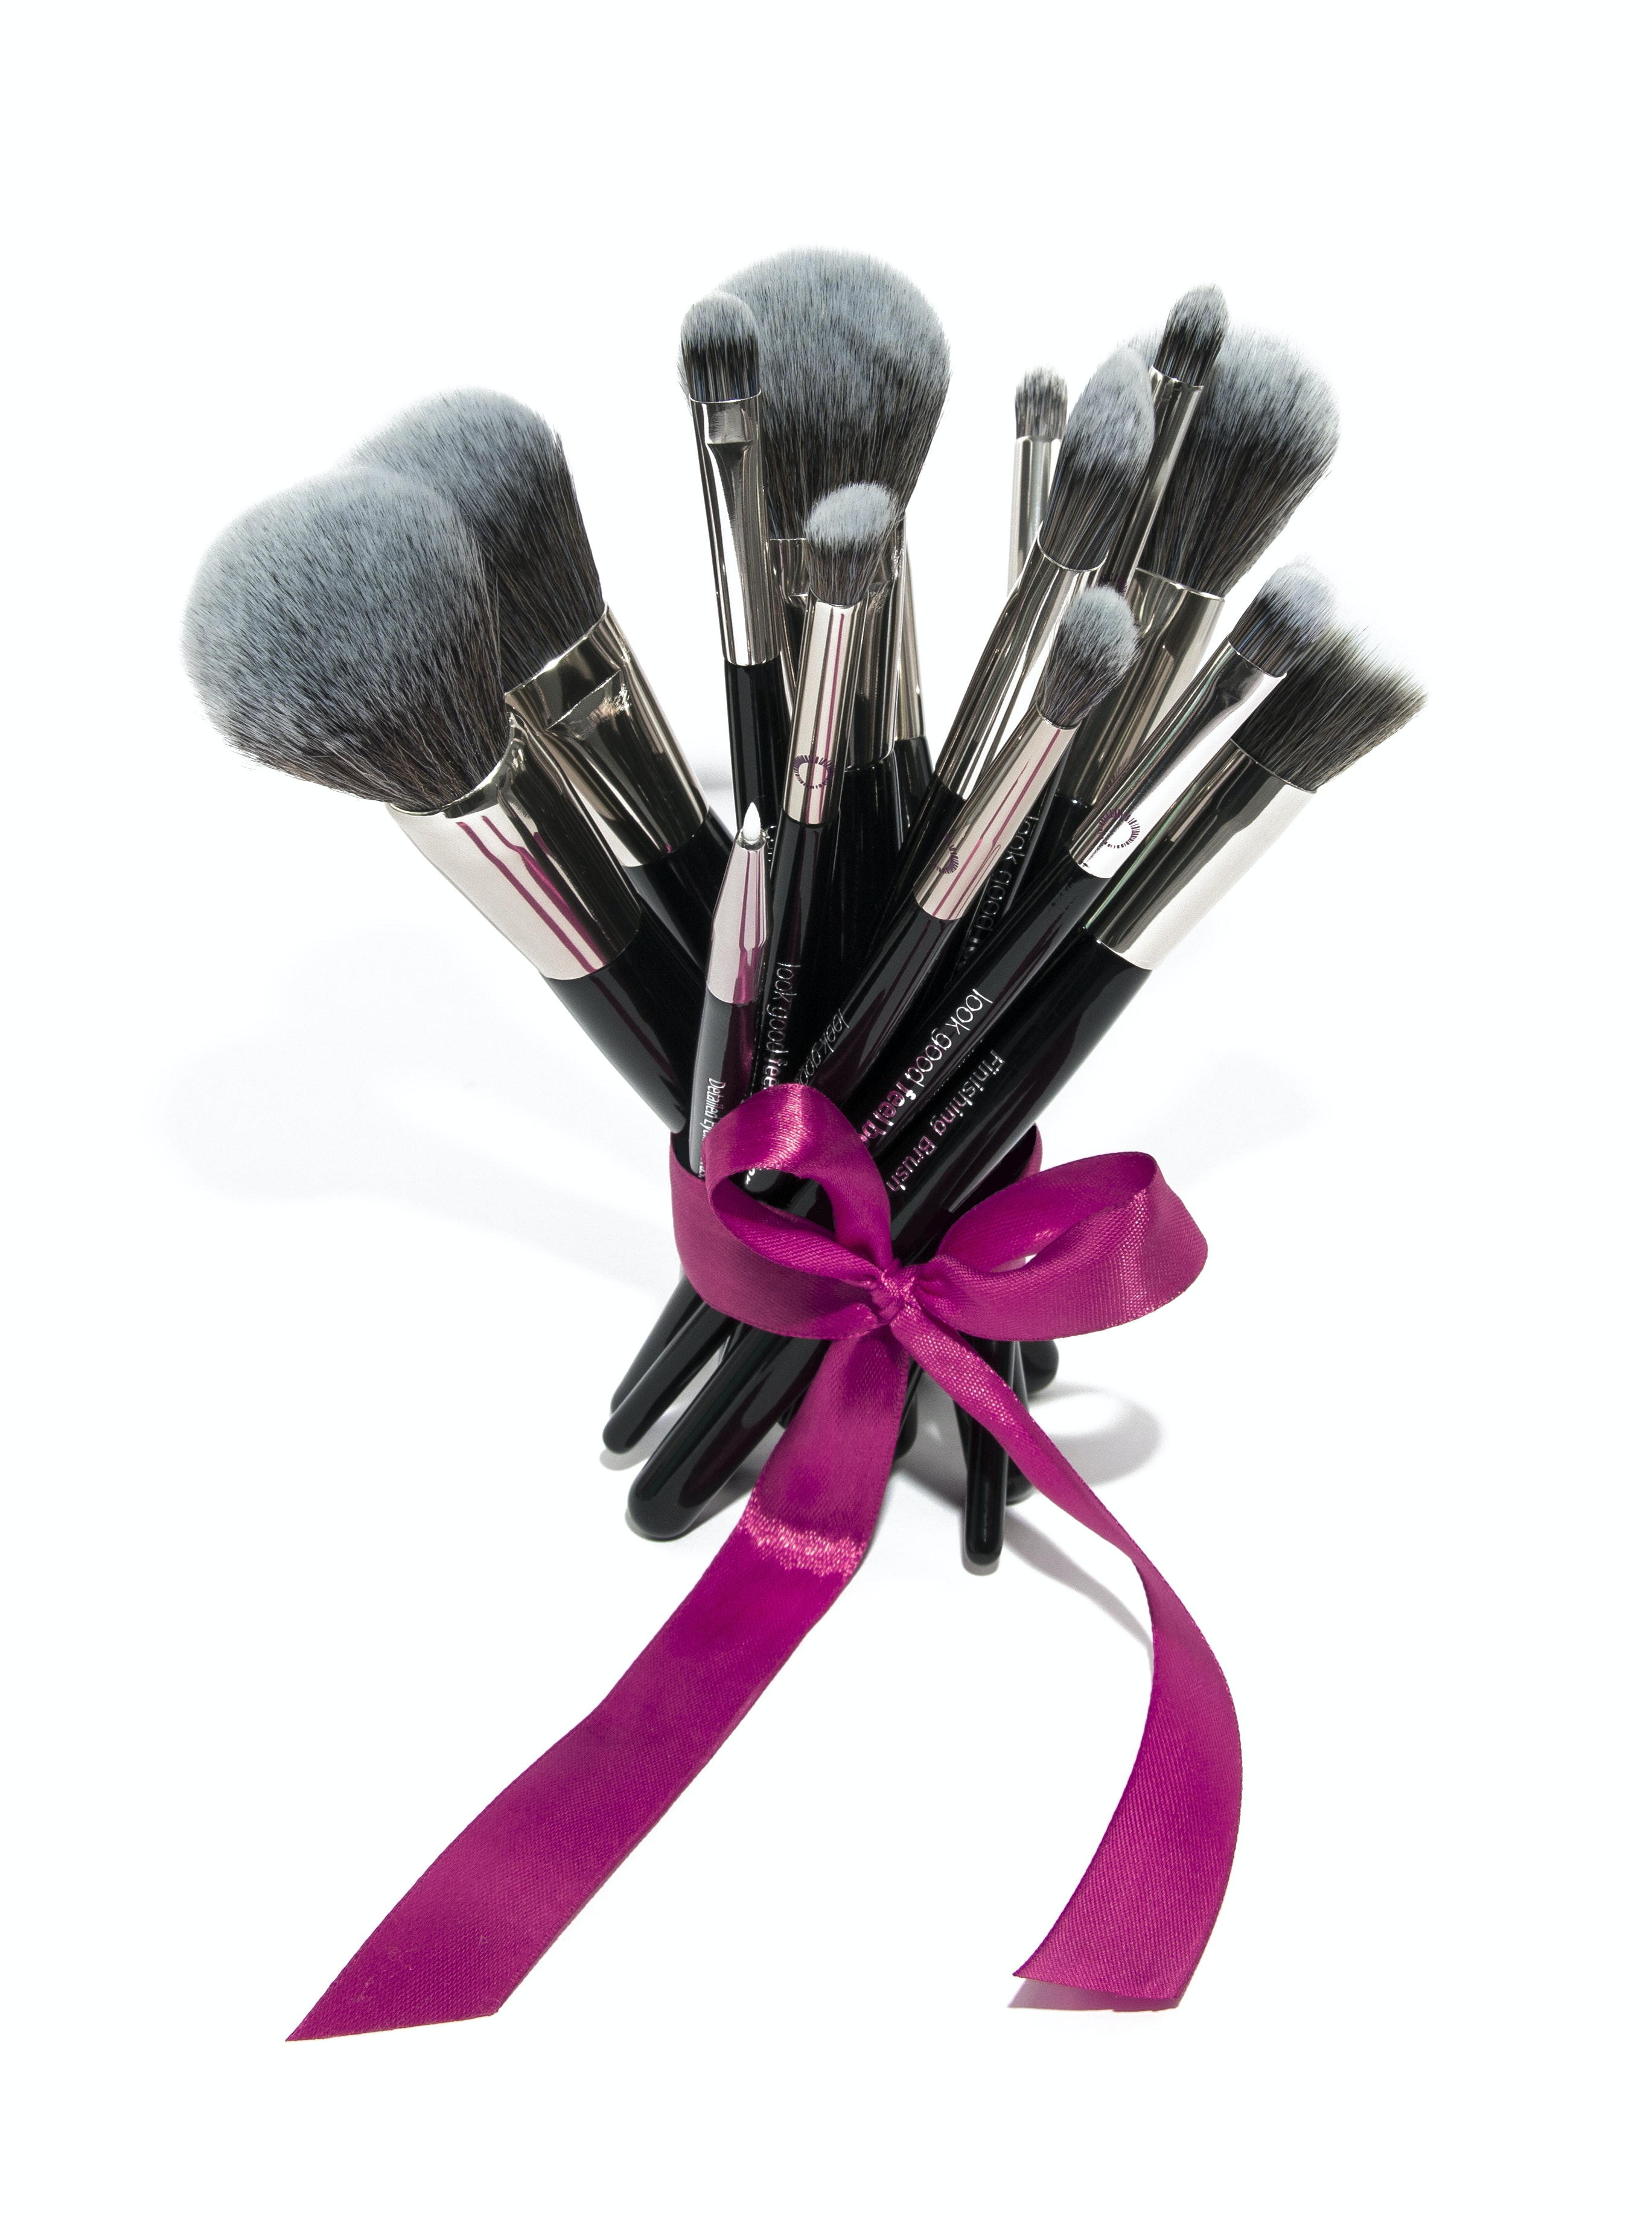 Look Good Feel Better makeup brushes sweepstakes